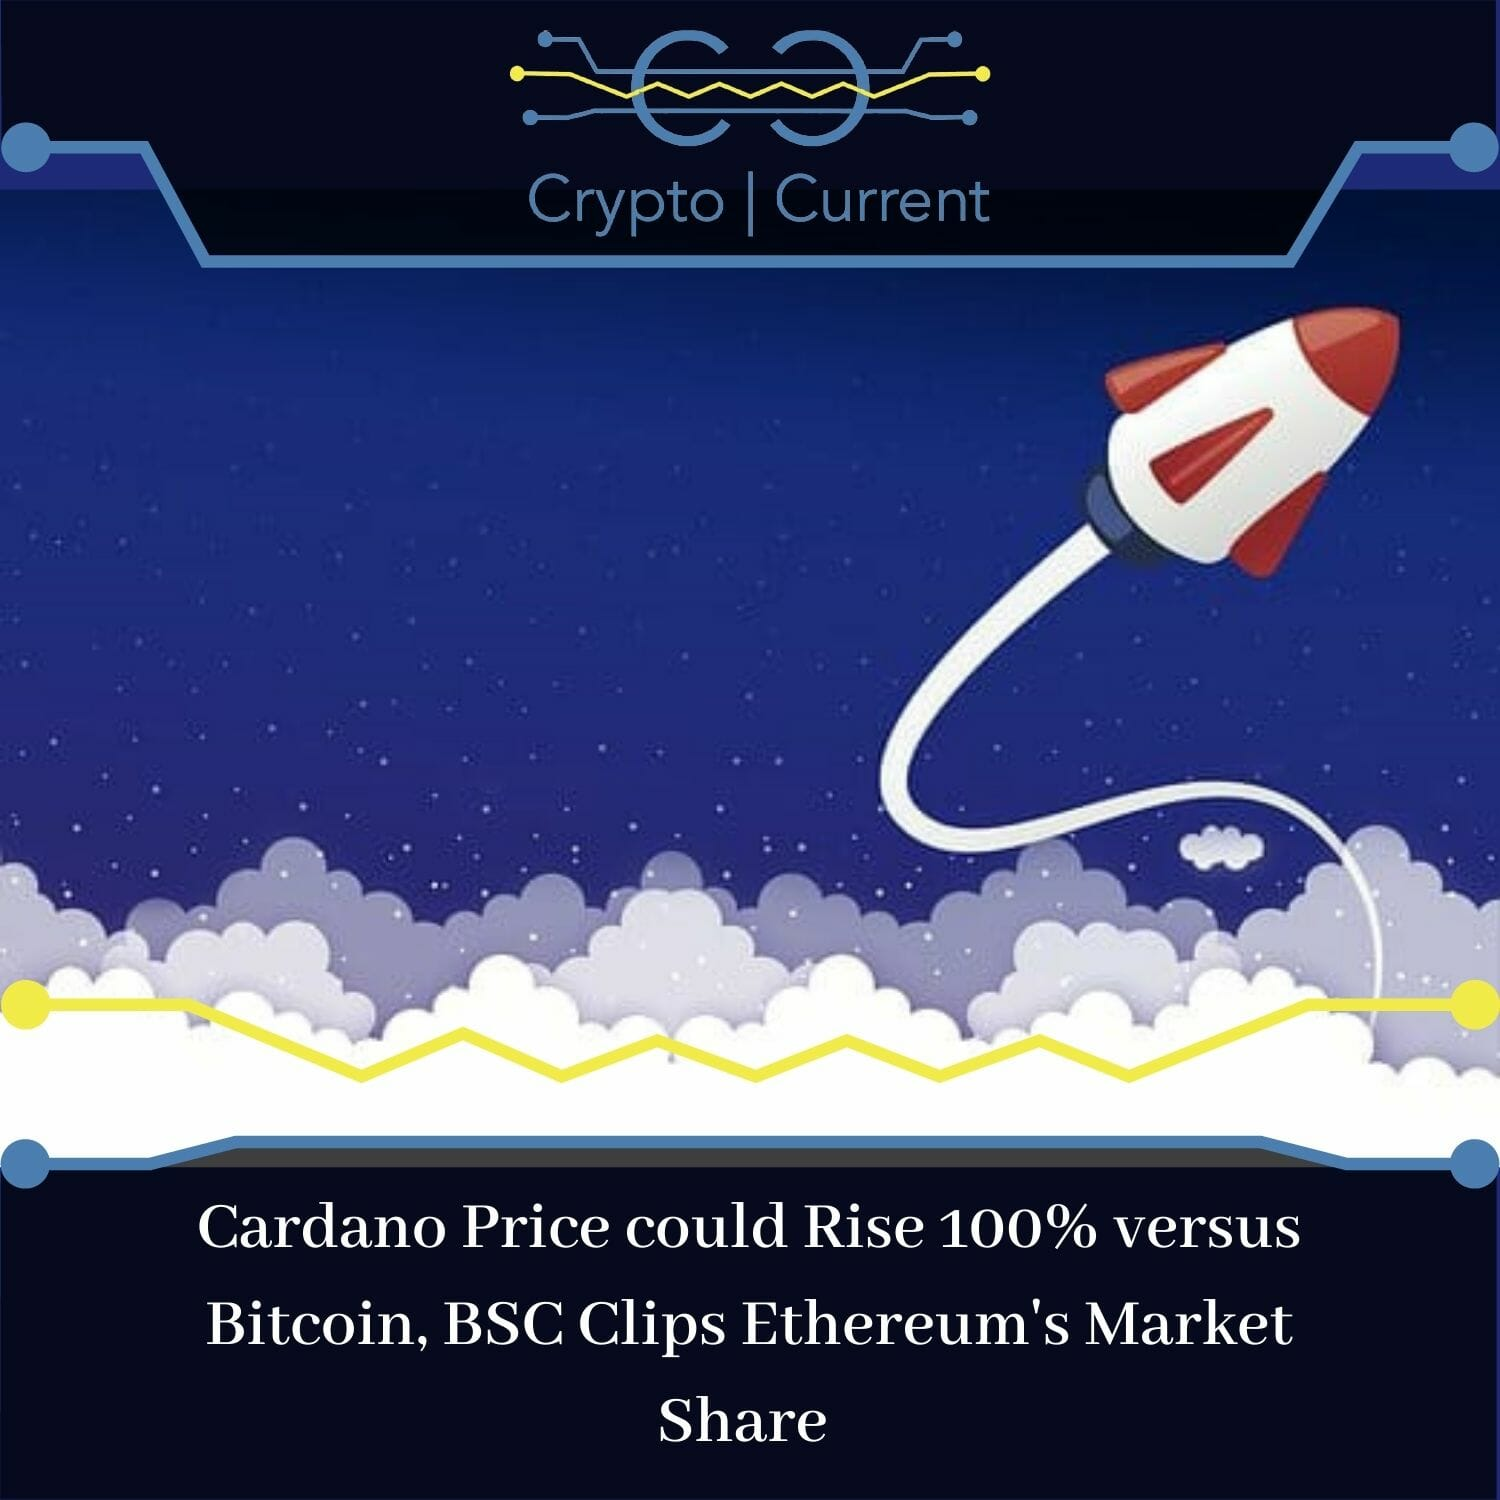 Cardano Price could Rise 100% versus Bitcoin, BSC Clips Ethereum's Market Share